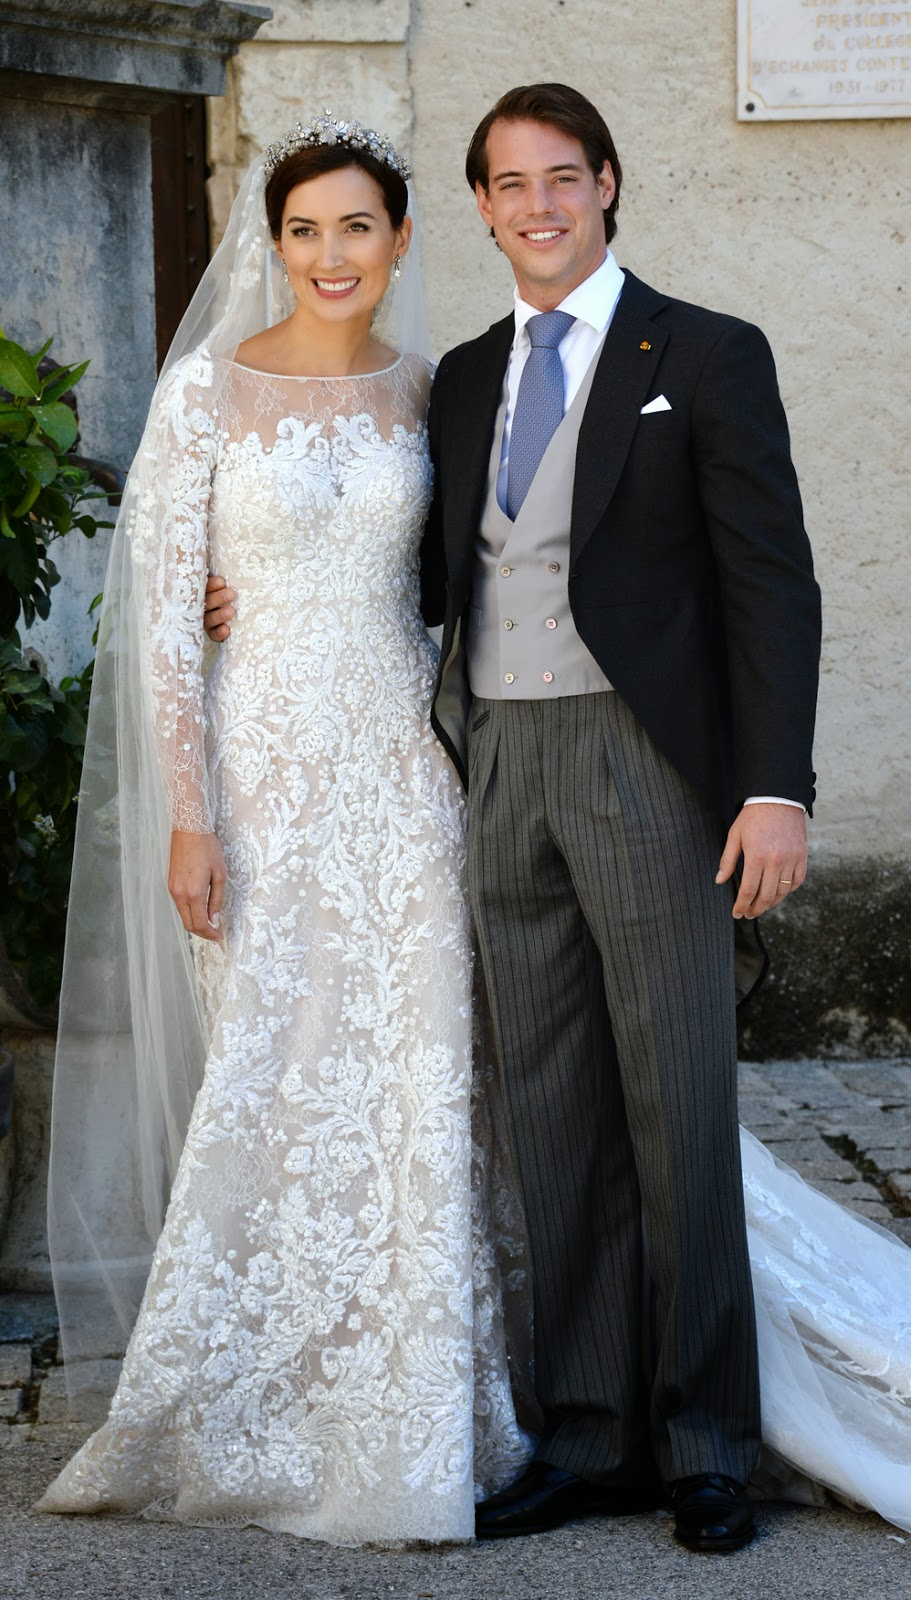 Photo Annechristine Poujoulat Afp: Princess Claire Wedding Dress At Websimilar.org